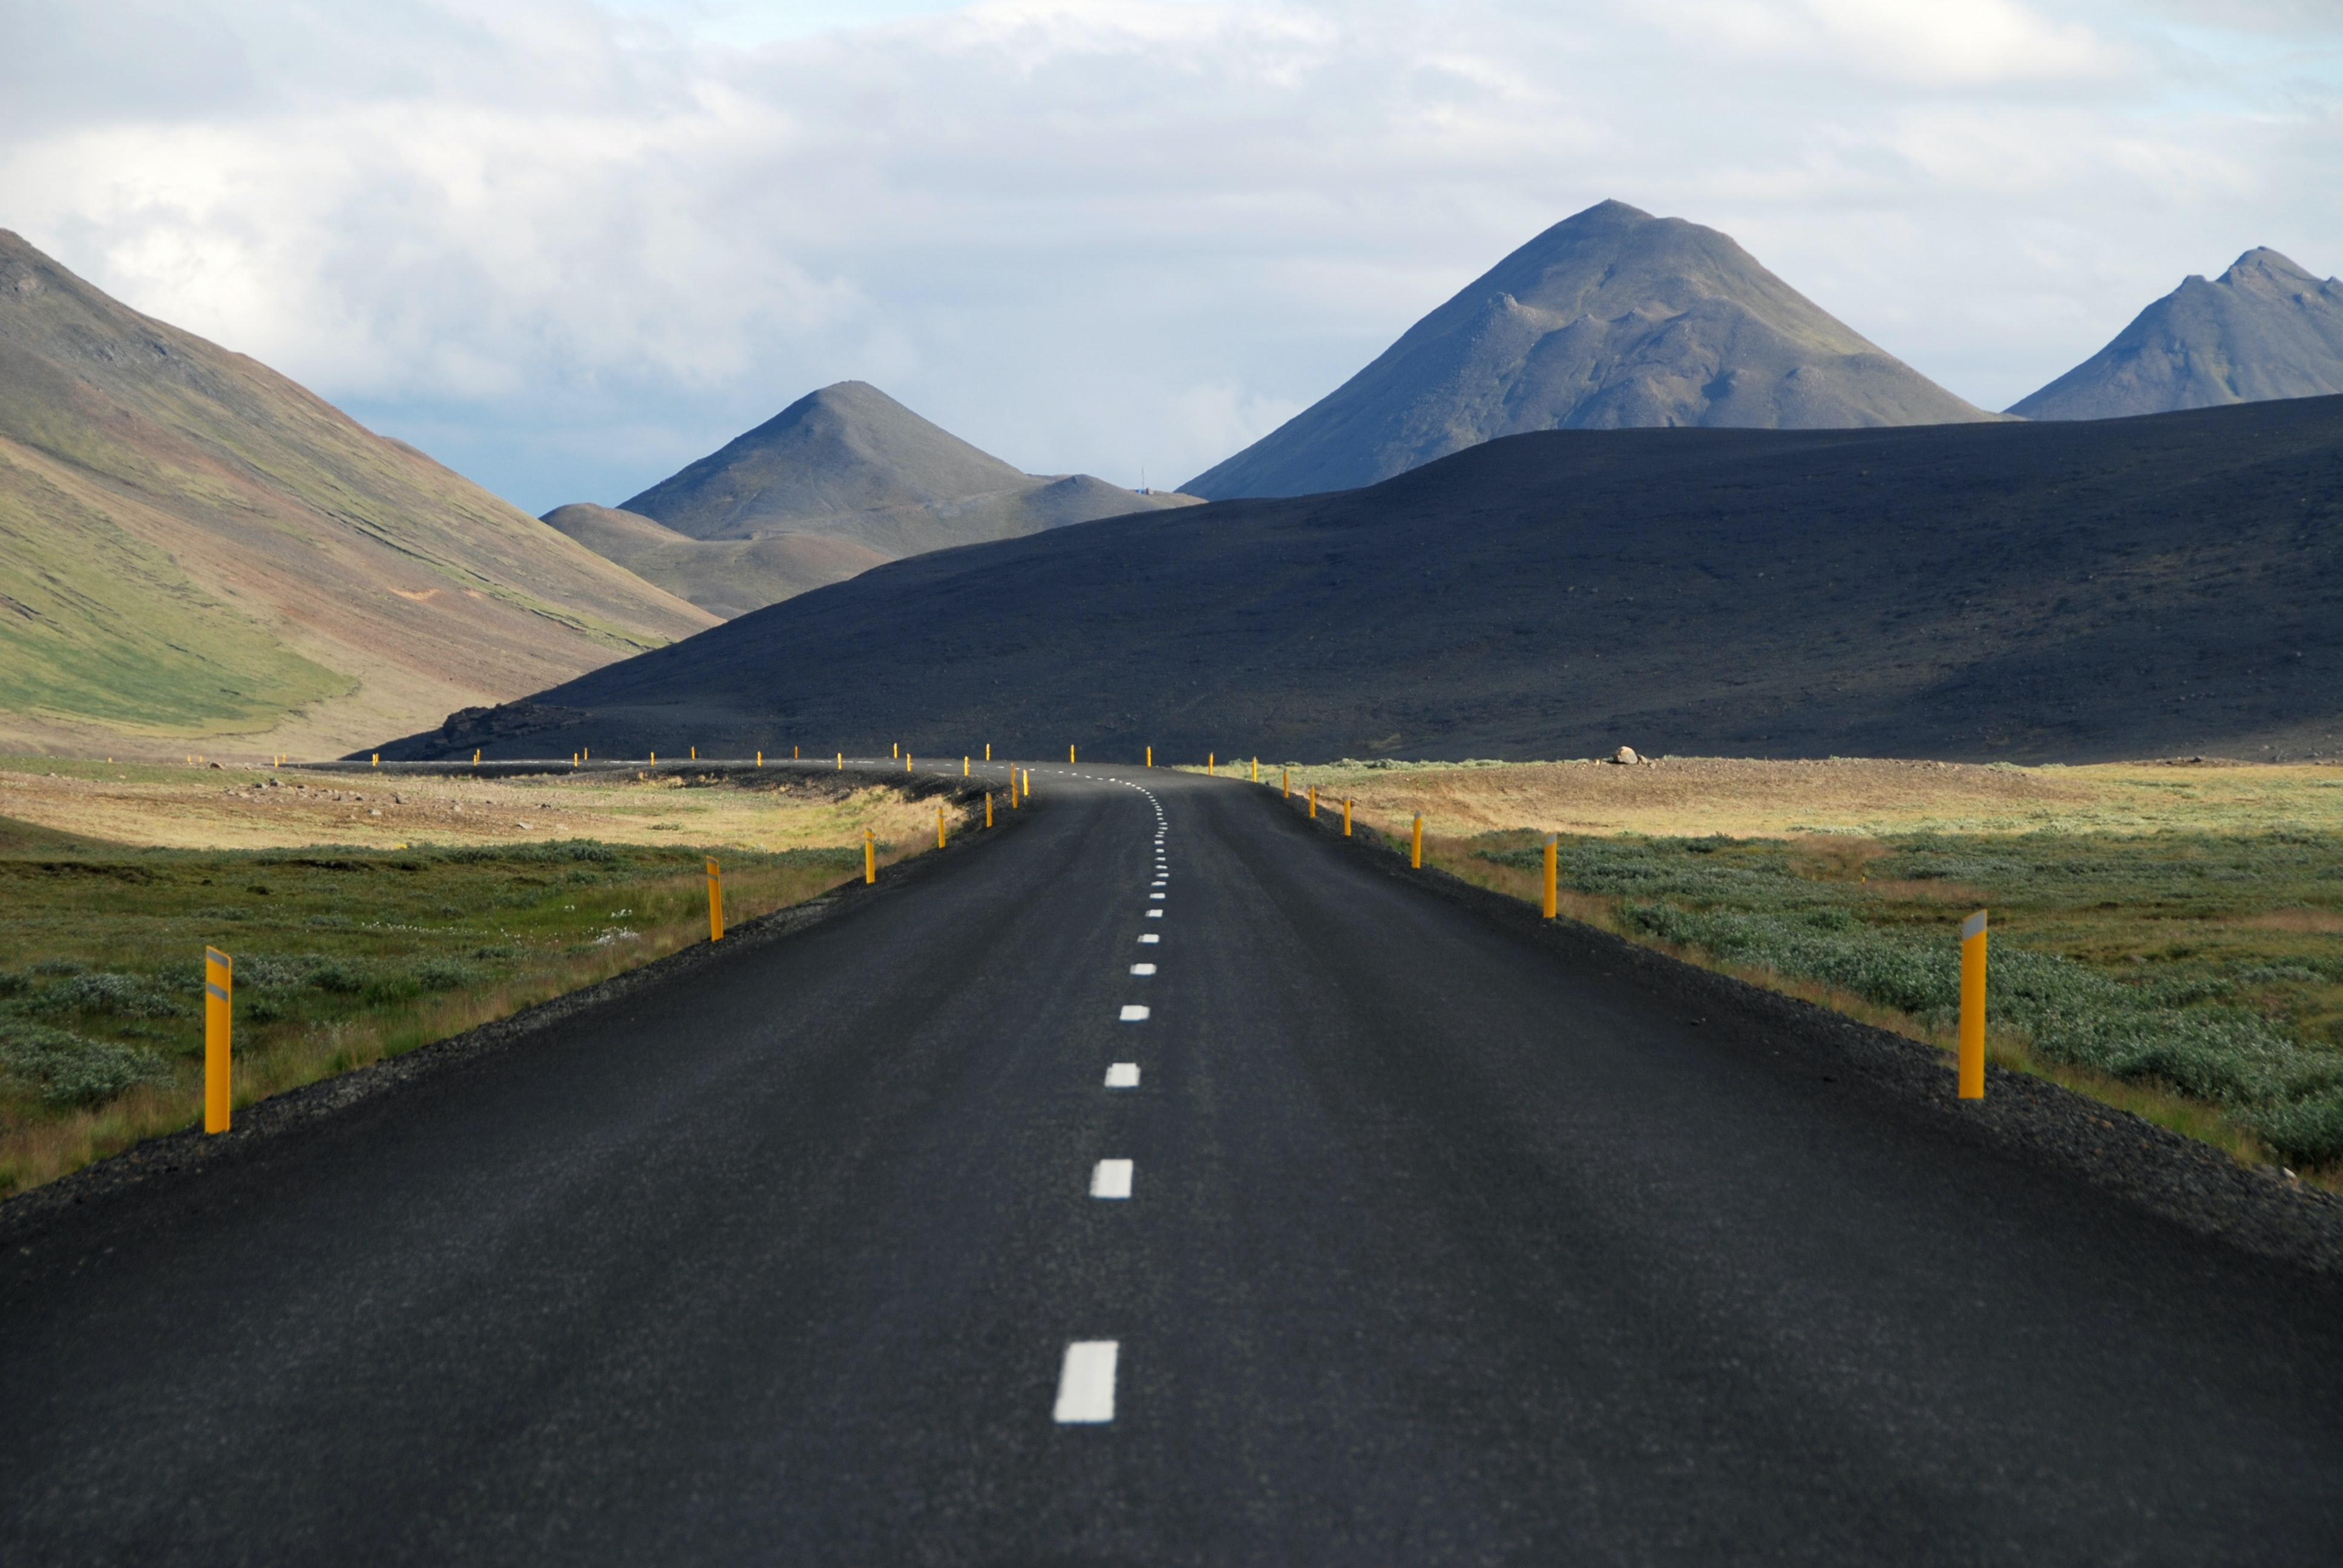 A curve in an empty asphalt road in the highlands